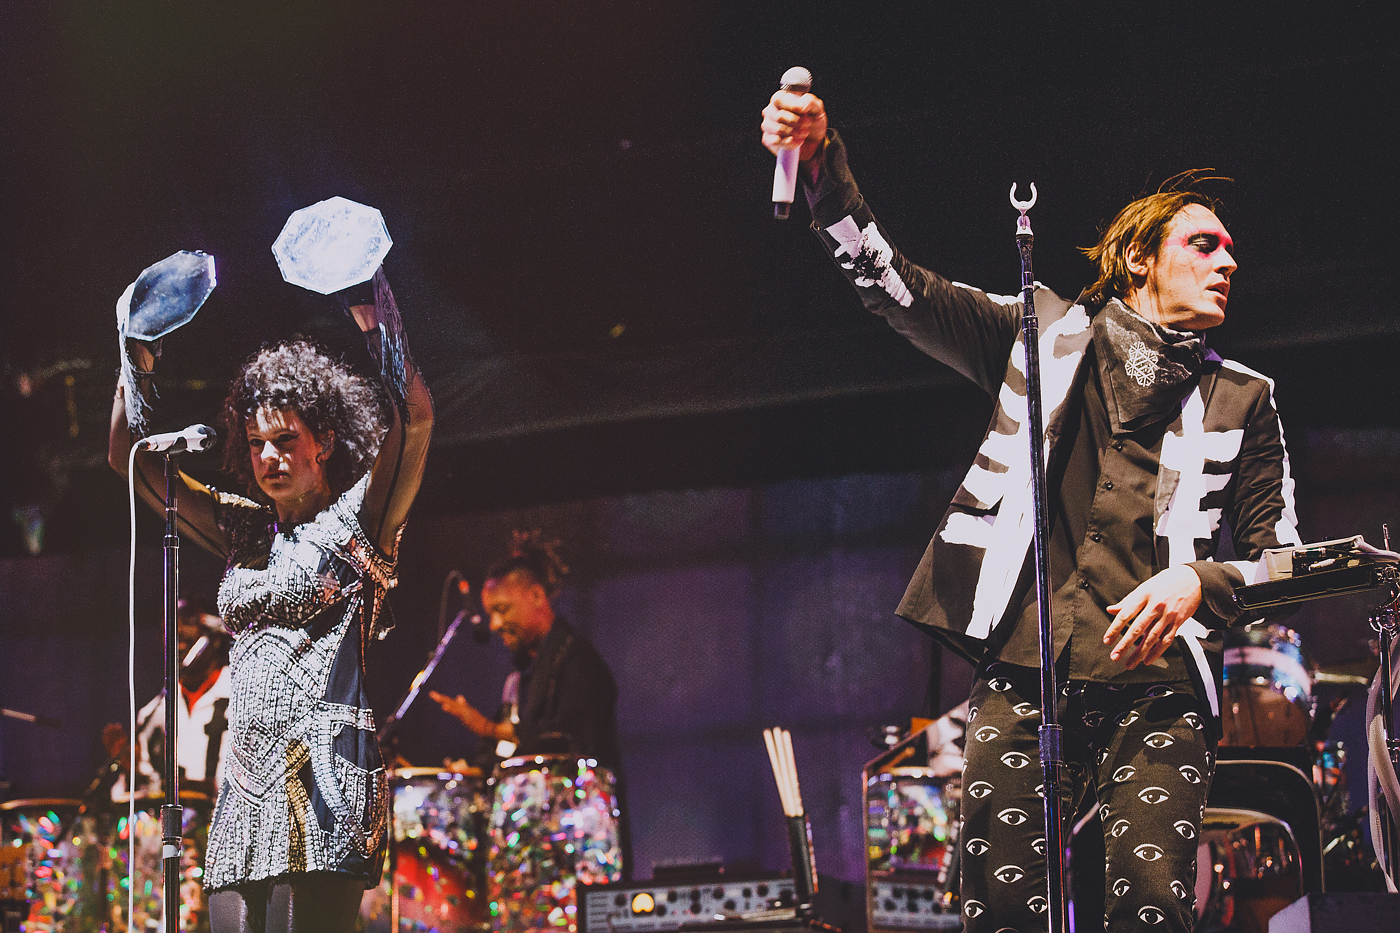 arcade_fire04_website_image_ytnv_wuxga